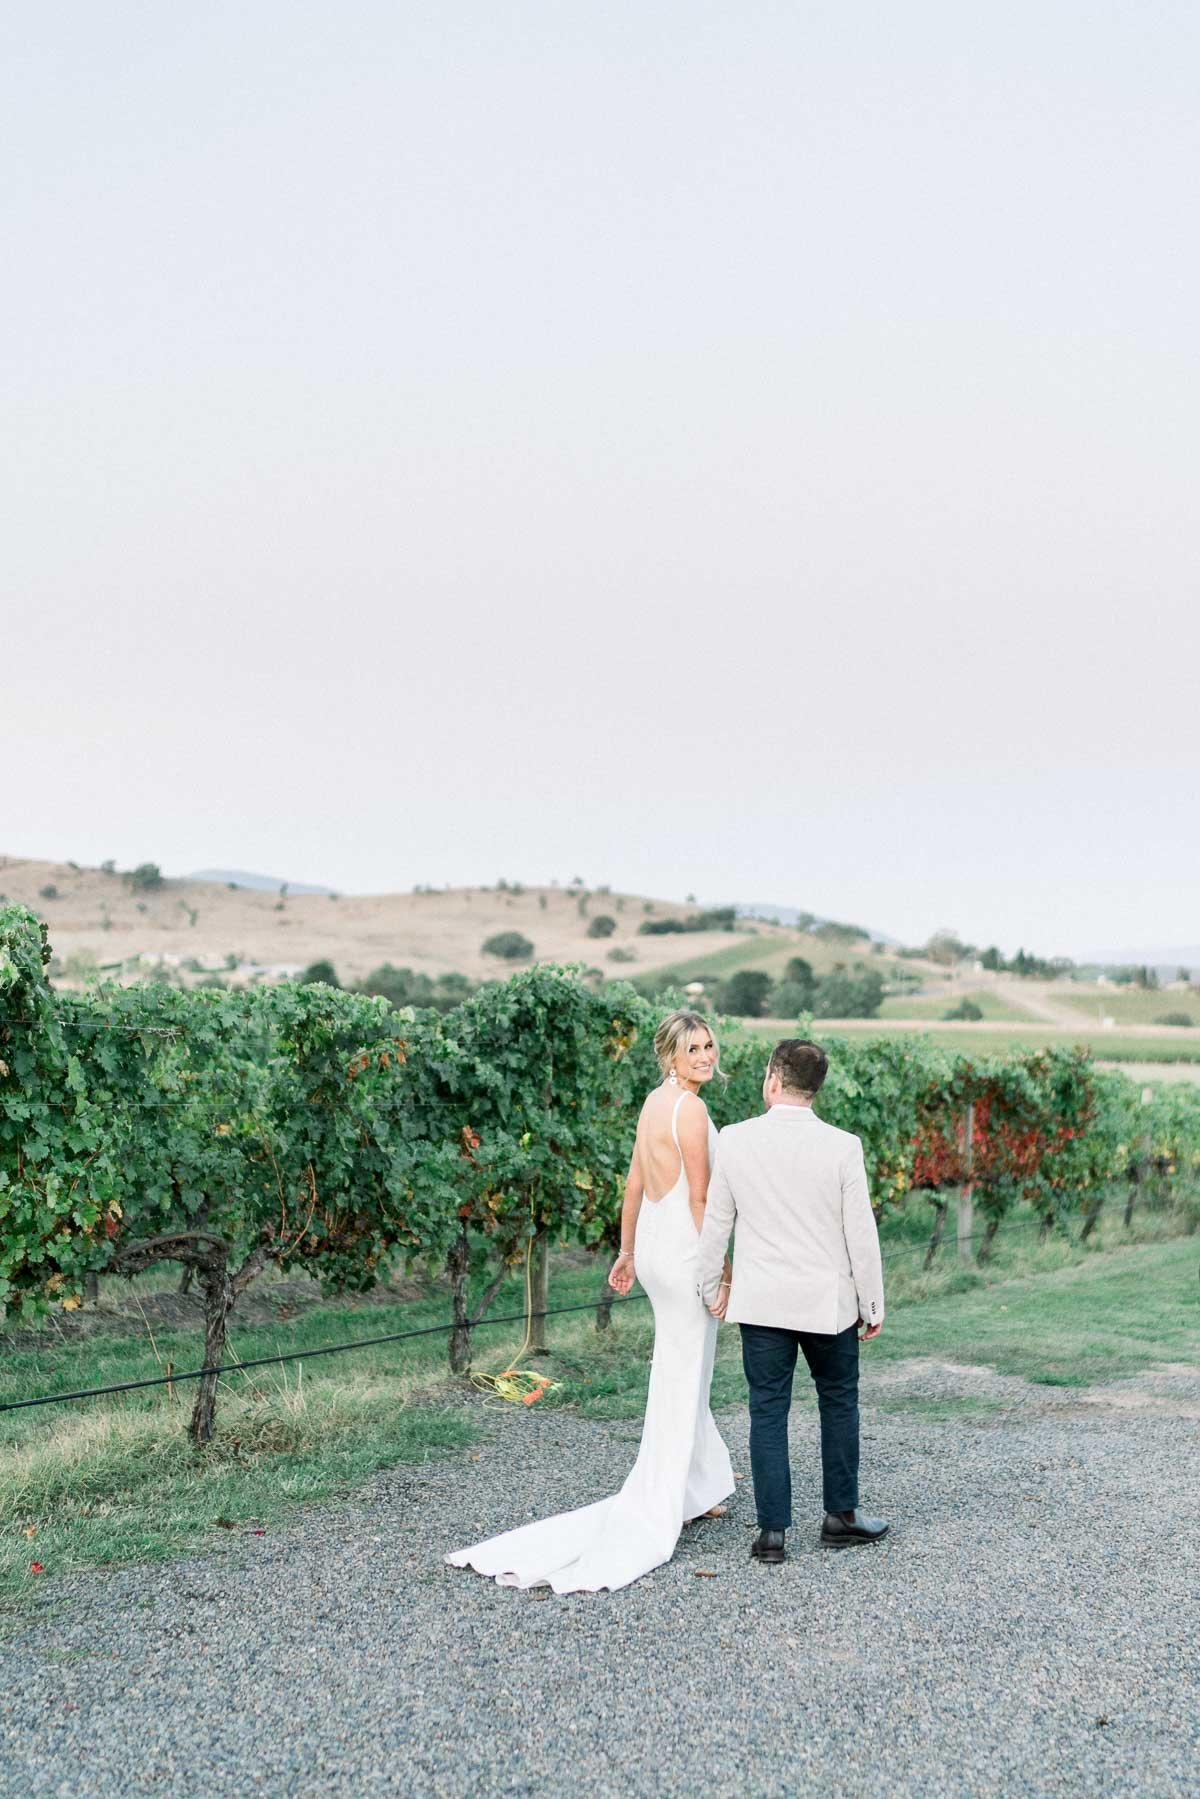 rustic-yarra-valley-wedding-venue-acacia-ridge-georgia-james-08475